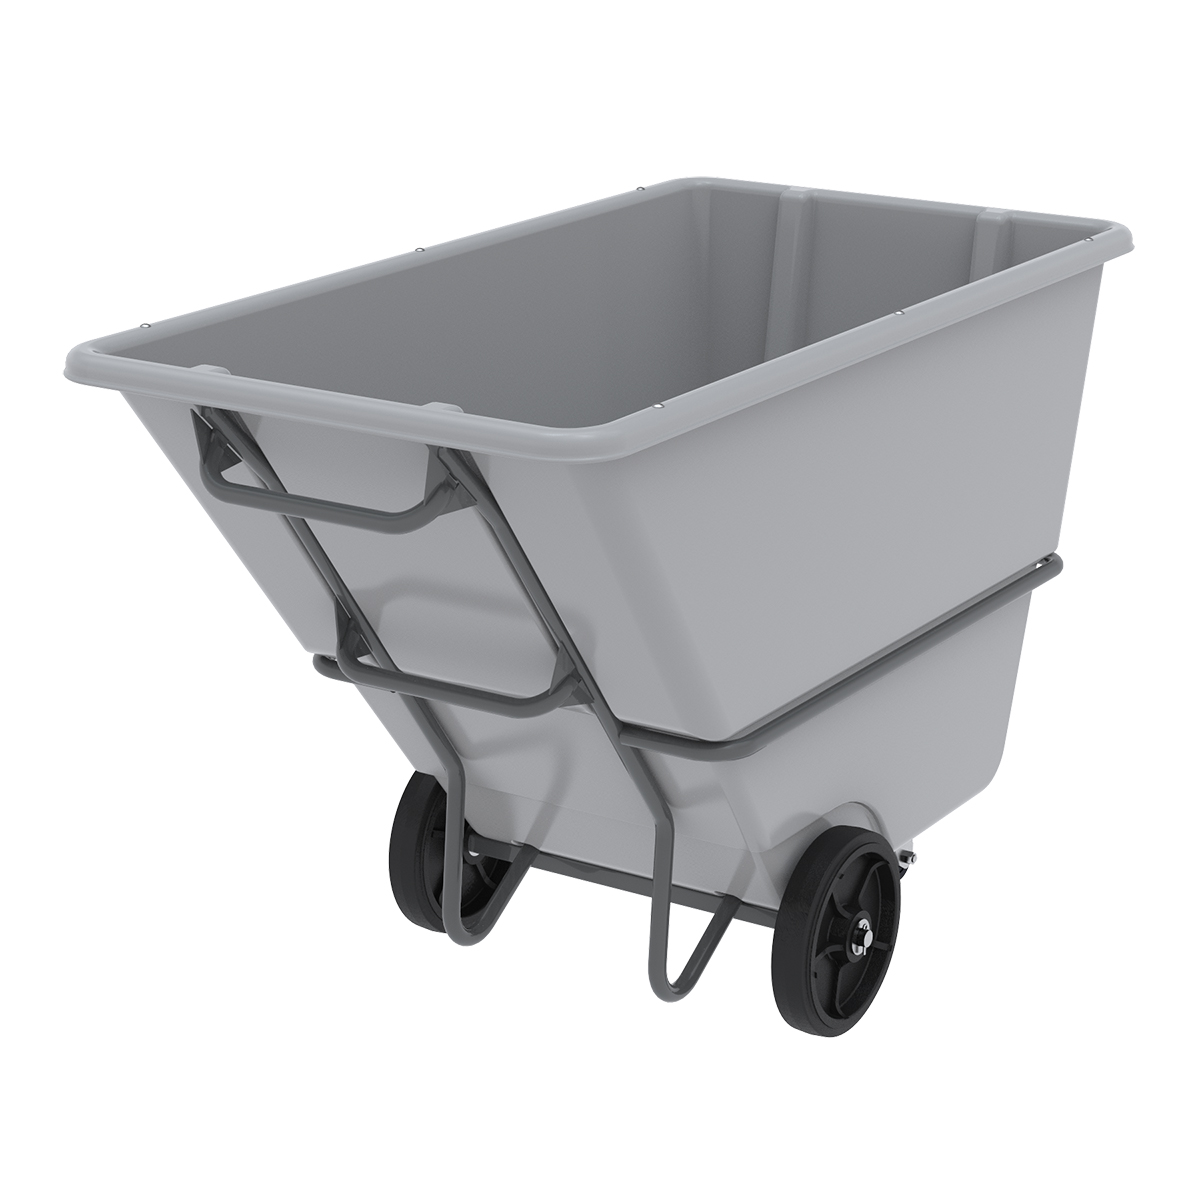 AKRO-TILT TRUCK, SUPER HEAVY DUTY, 200GAL - 1 YD.  This item sold in carton quantities of 1.